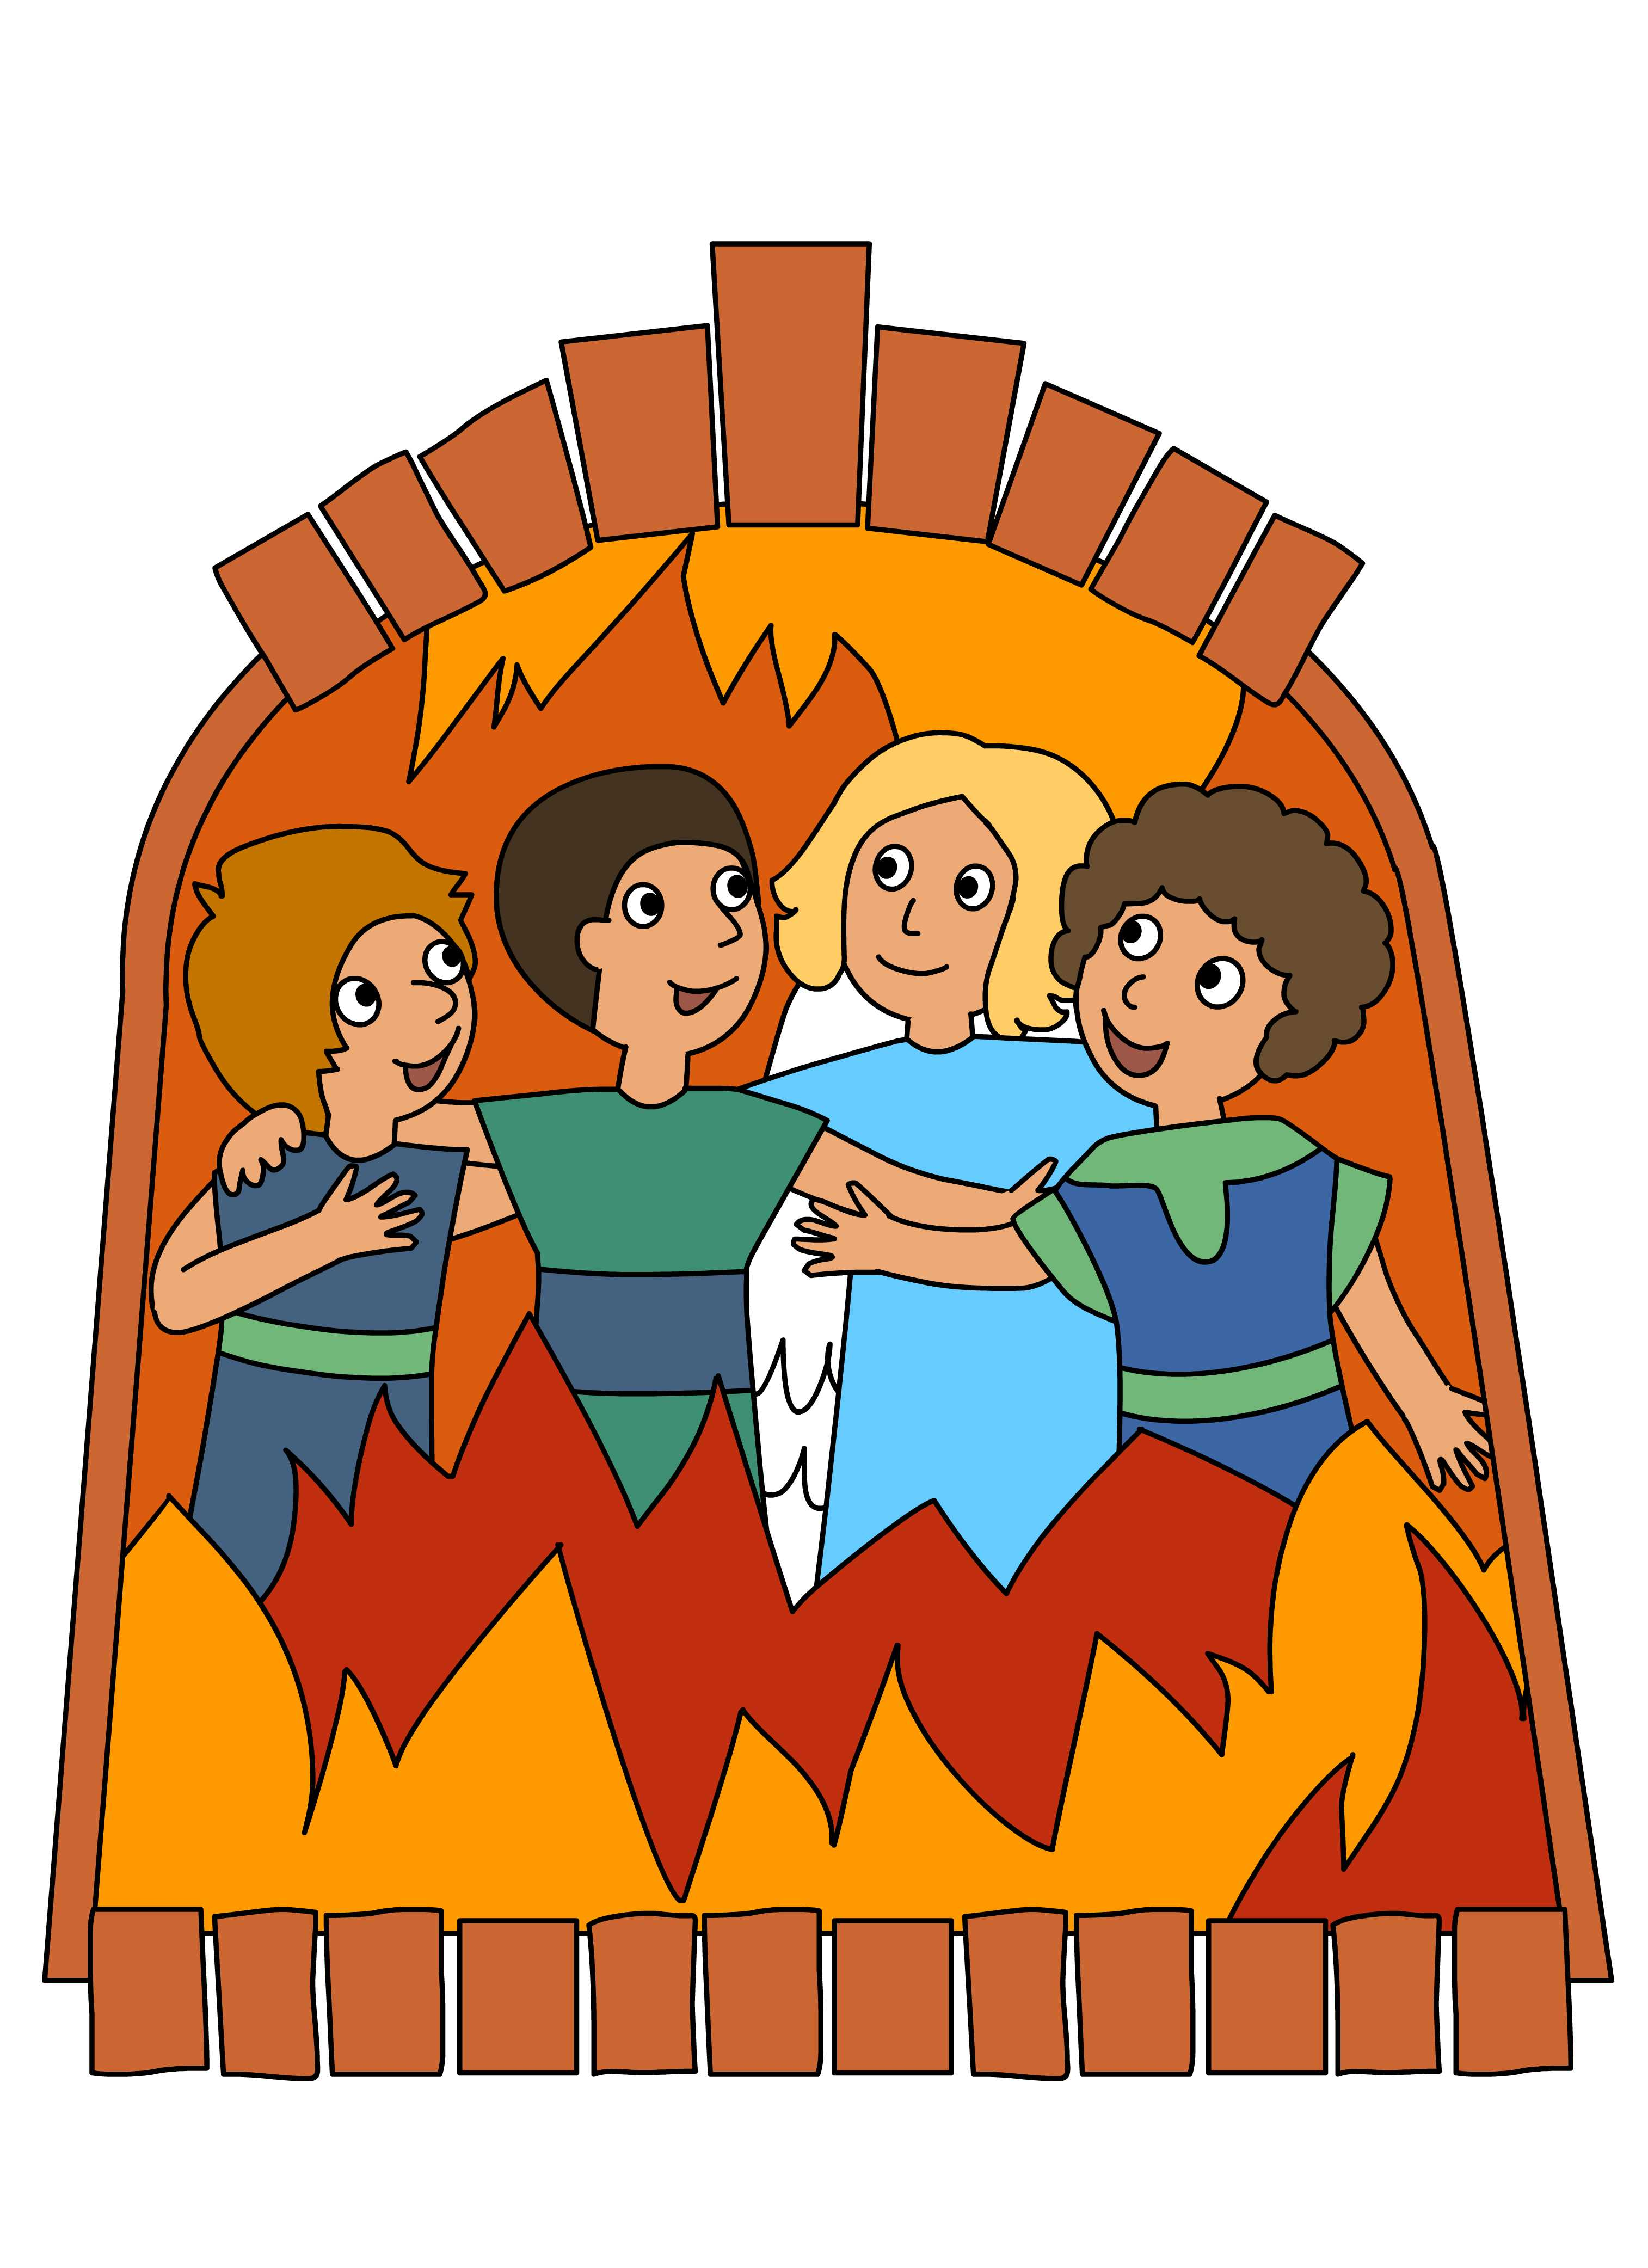 Shadrach Meshach And Abednego Clipart at GetDrawings.com.